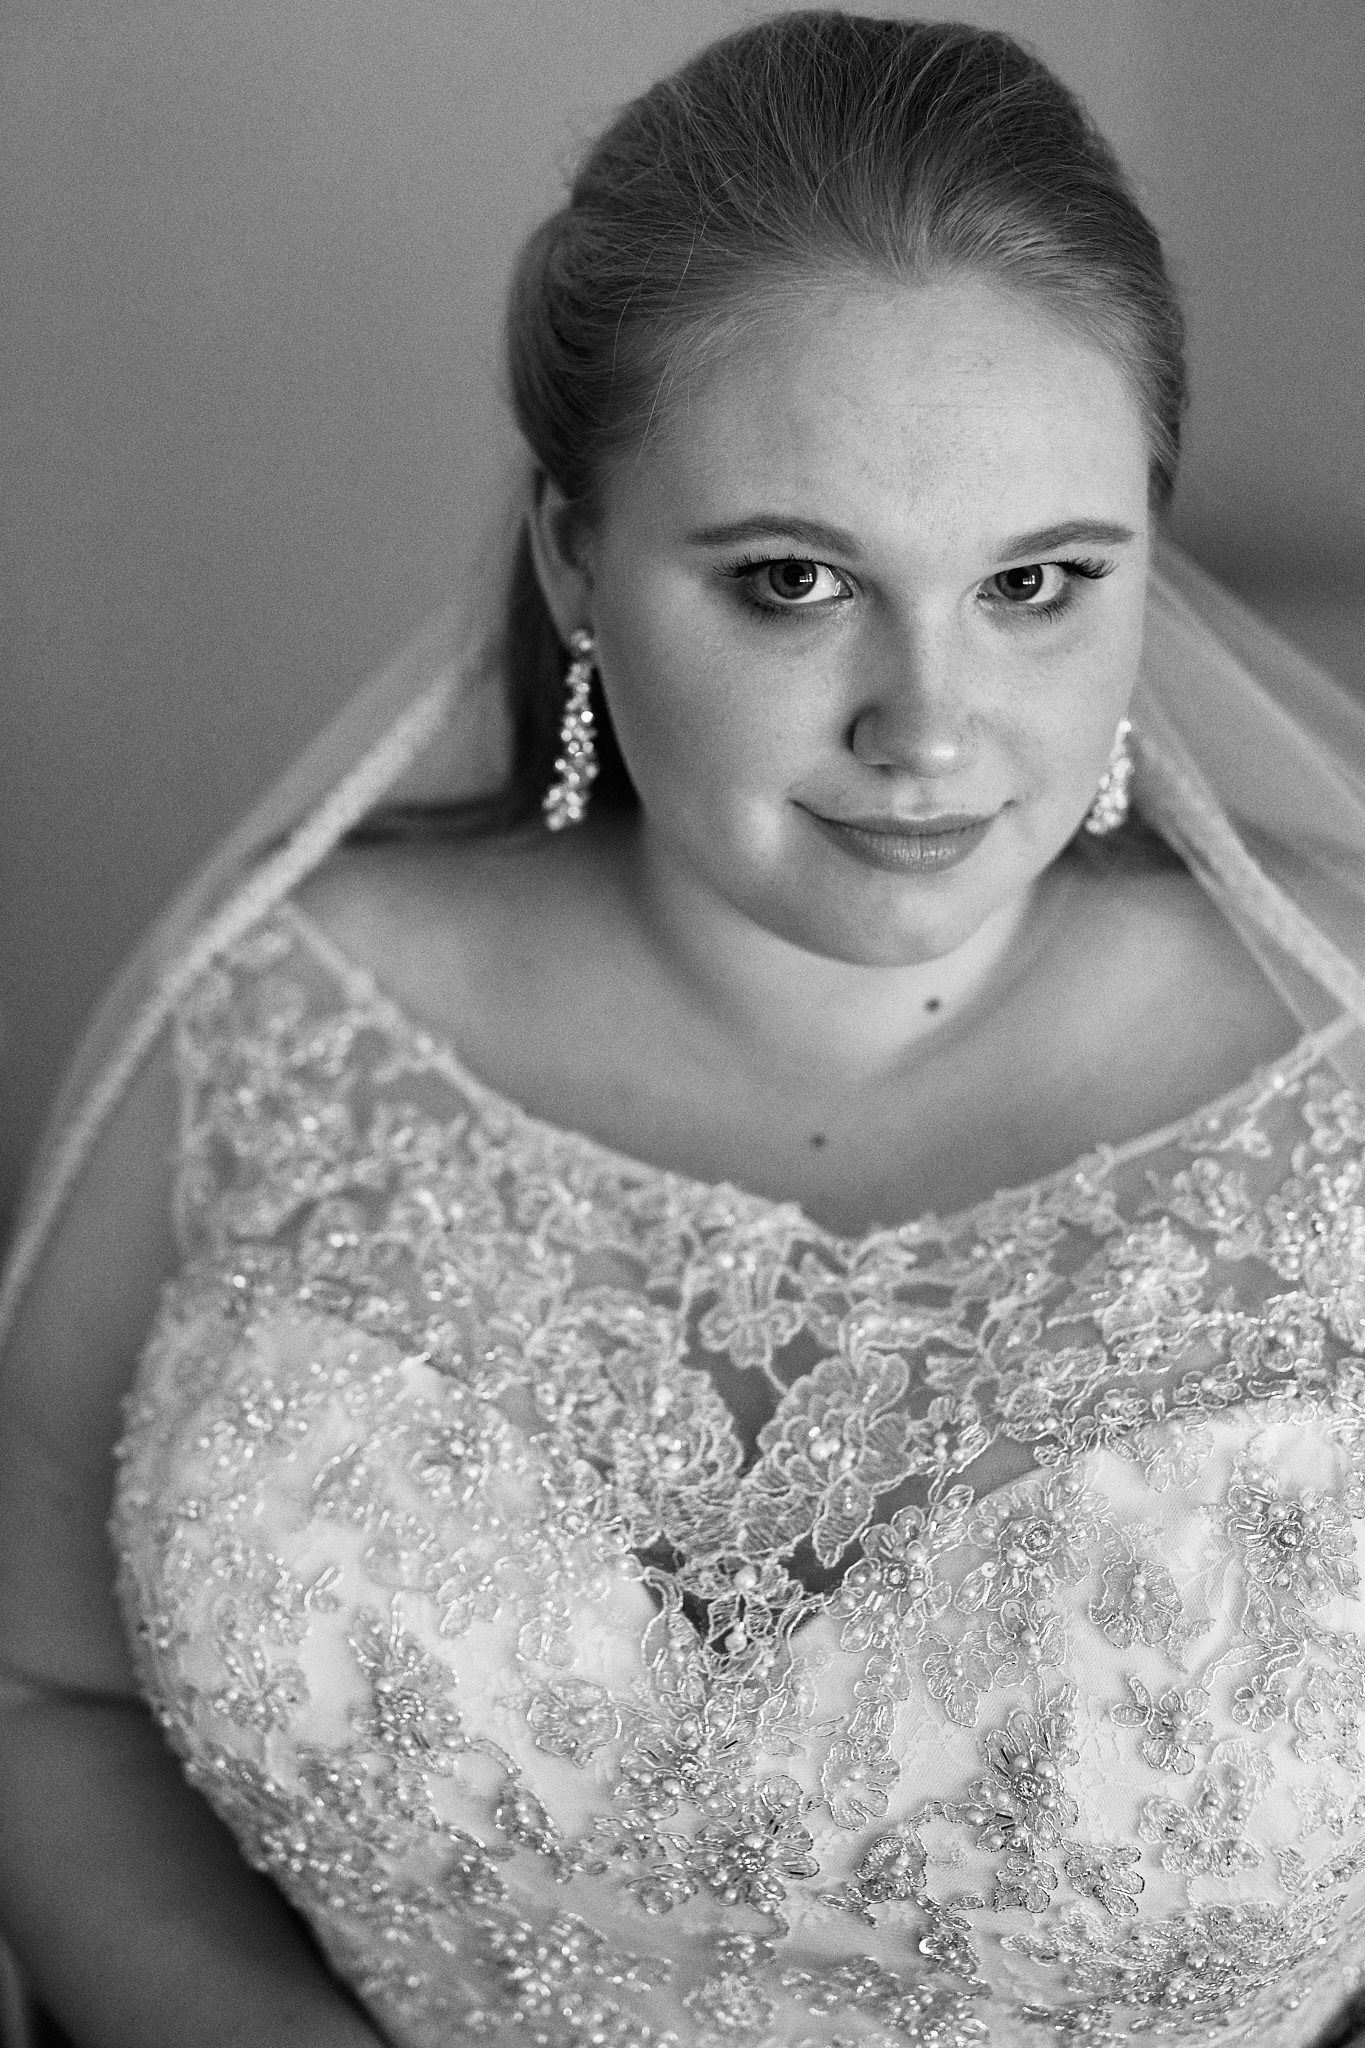 Original_Black_And_White_Photo_At_Wedding_Photography_High_End_Minneapolis_Brand_Photographer_Something_Candid_036.JPG